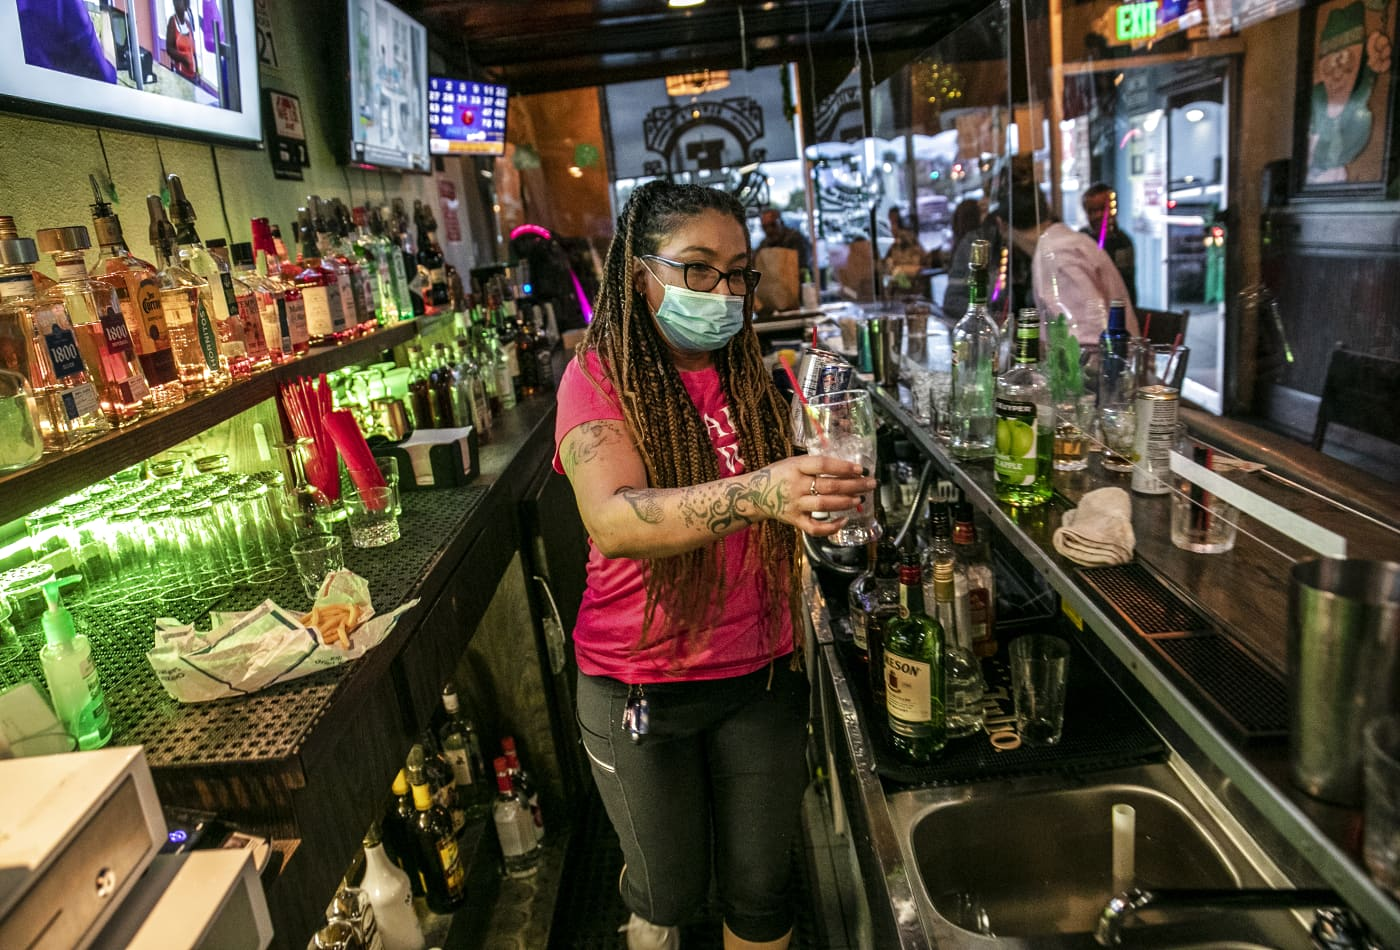 California closing all operations for bars, including takeout